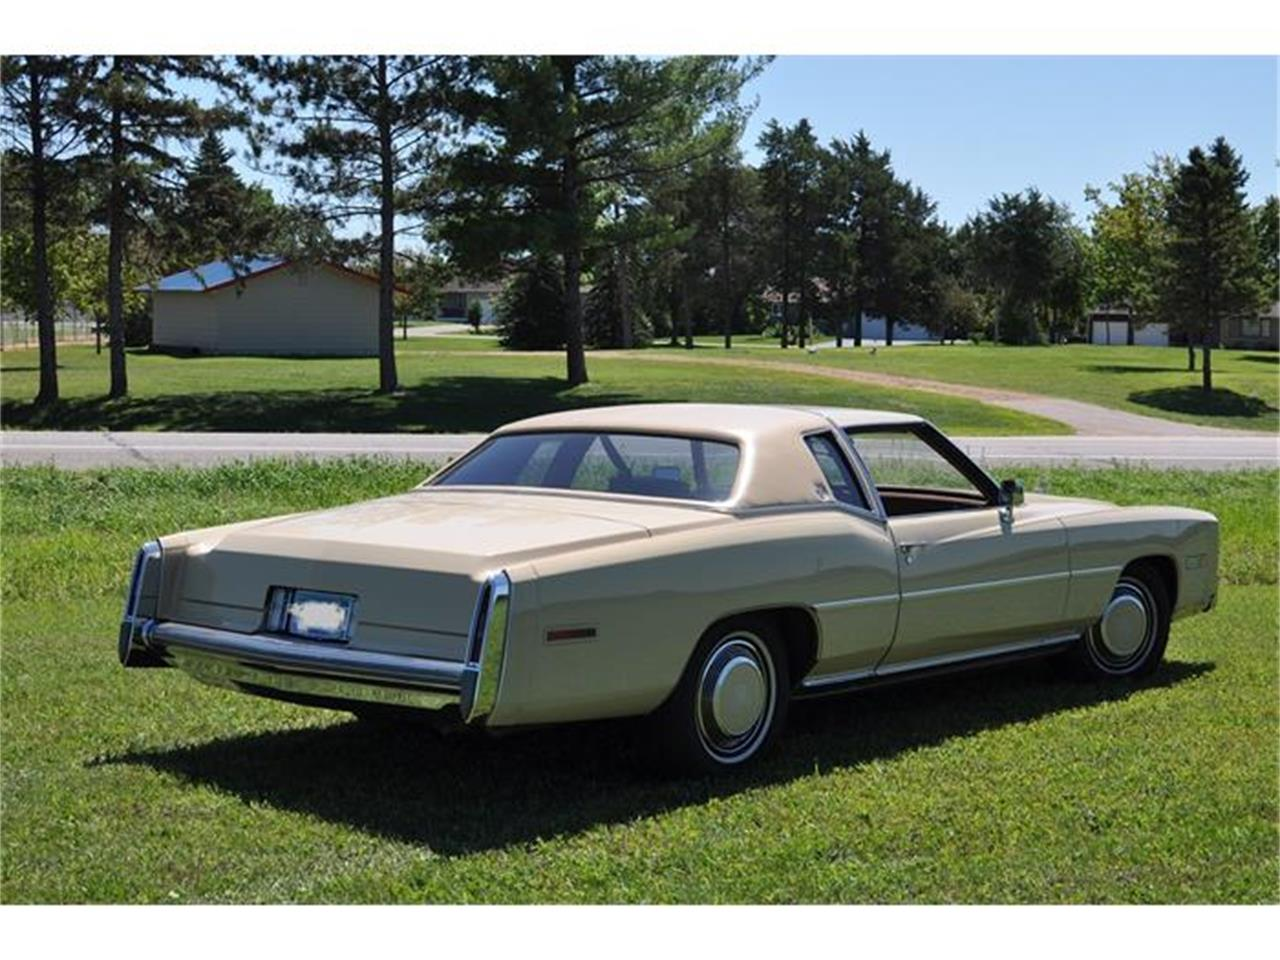 Large Picture of '78 Cadillac Eldorado located in Watertown Minnesota - $8,500.00 - F1VV